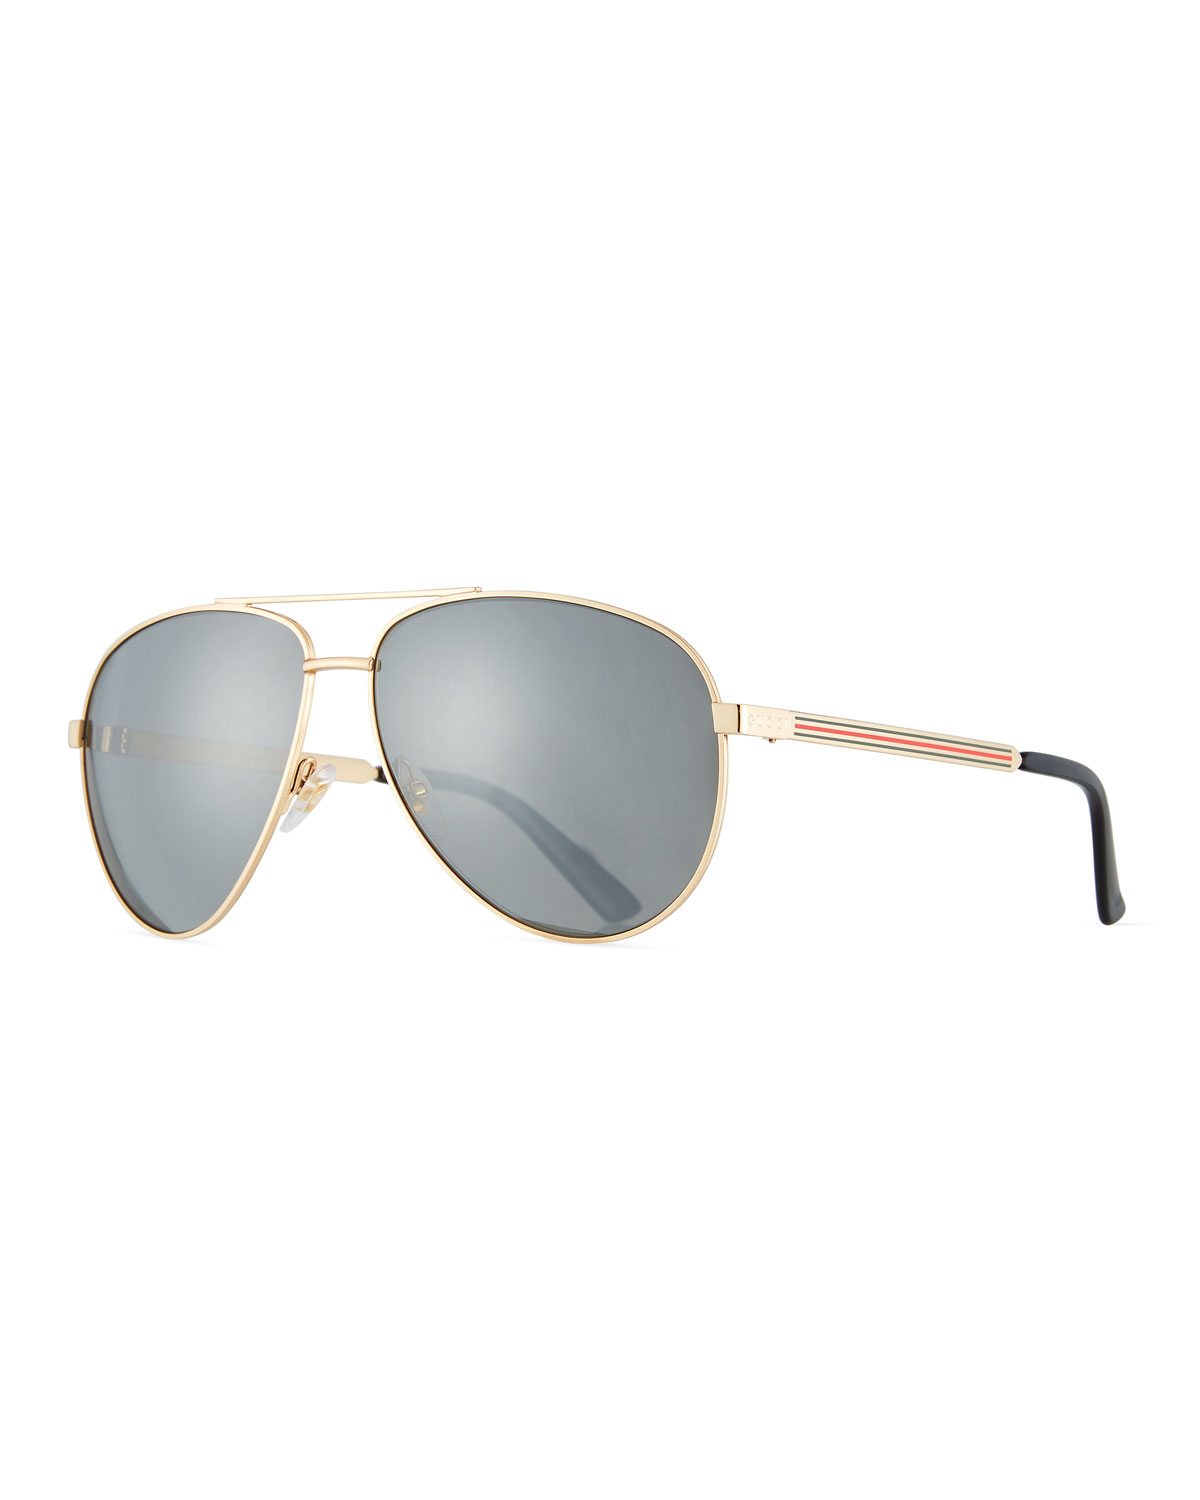 614ee53cd91 Gucci Men s Aviator Sunglasses with Web